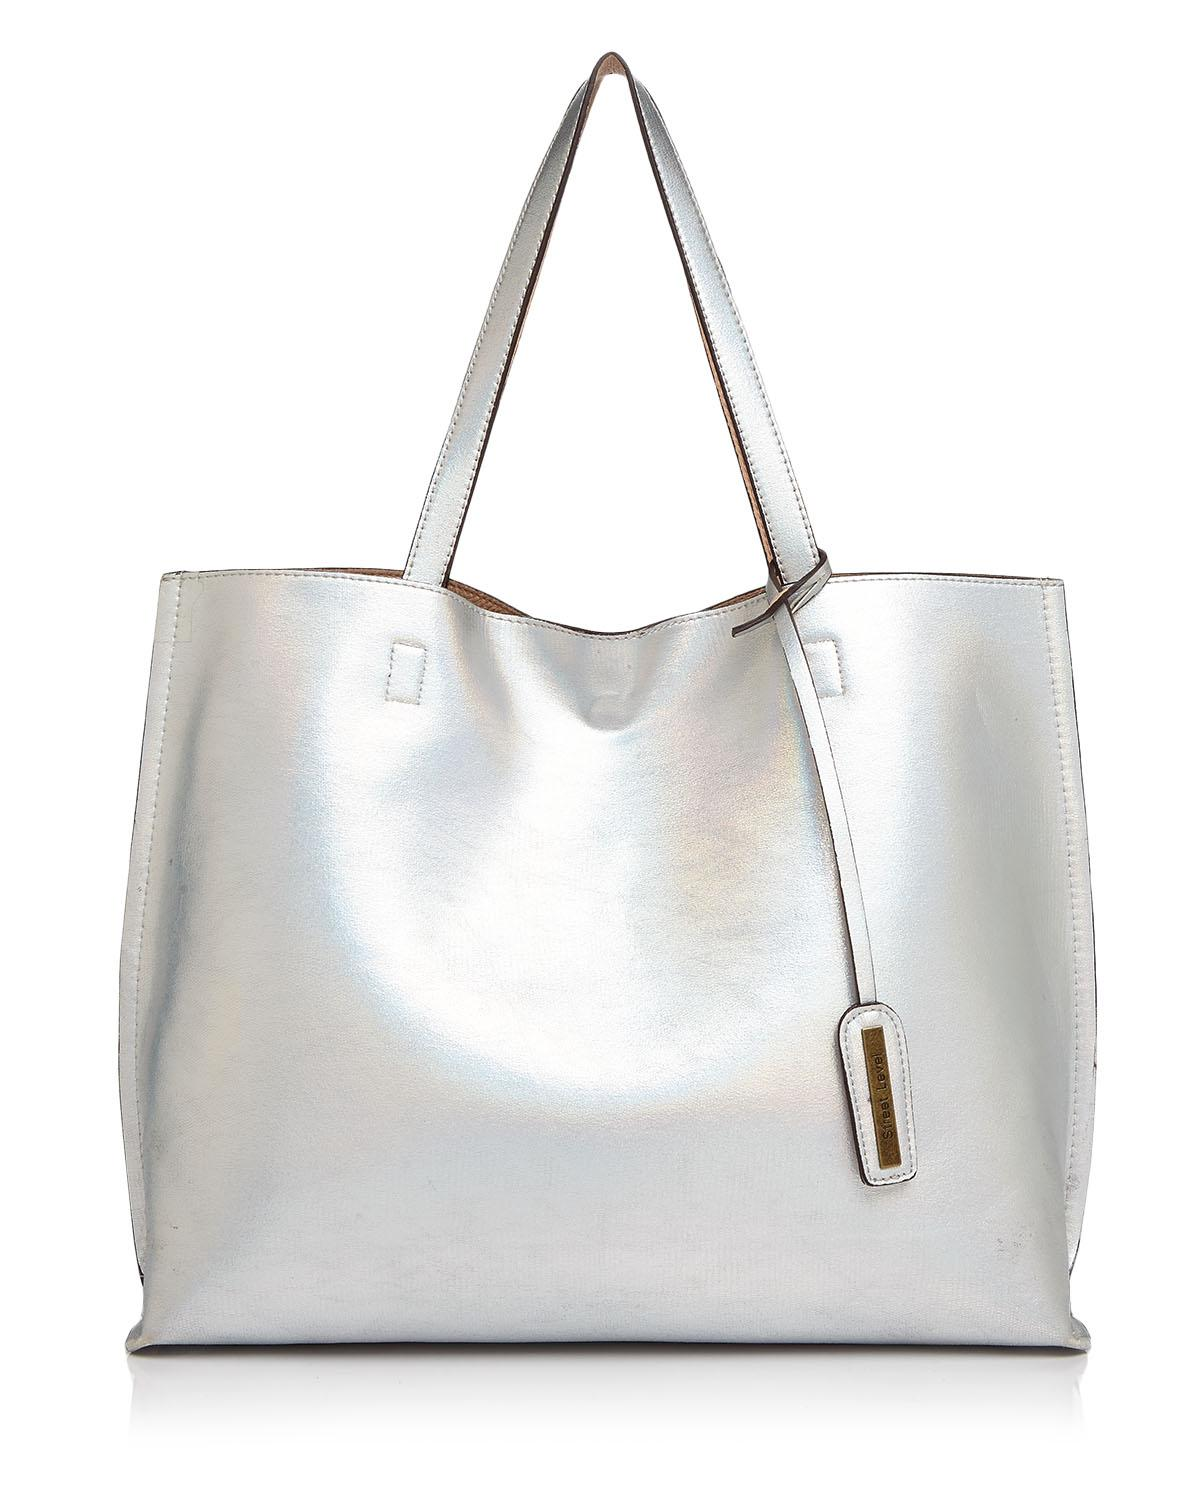 Street Level Nova Hologram Reversible Tote at Bloomingdale's{&amp;nbsp;} // Price: $60.00 // (Image: Bloomindale's // bloomingdales.com){&amp;nbsp;}<p></p>